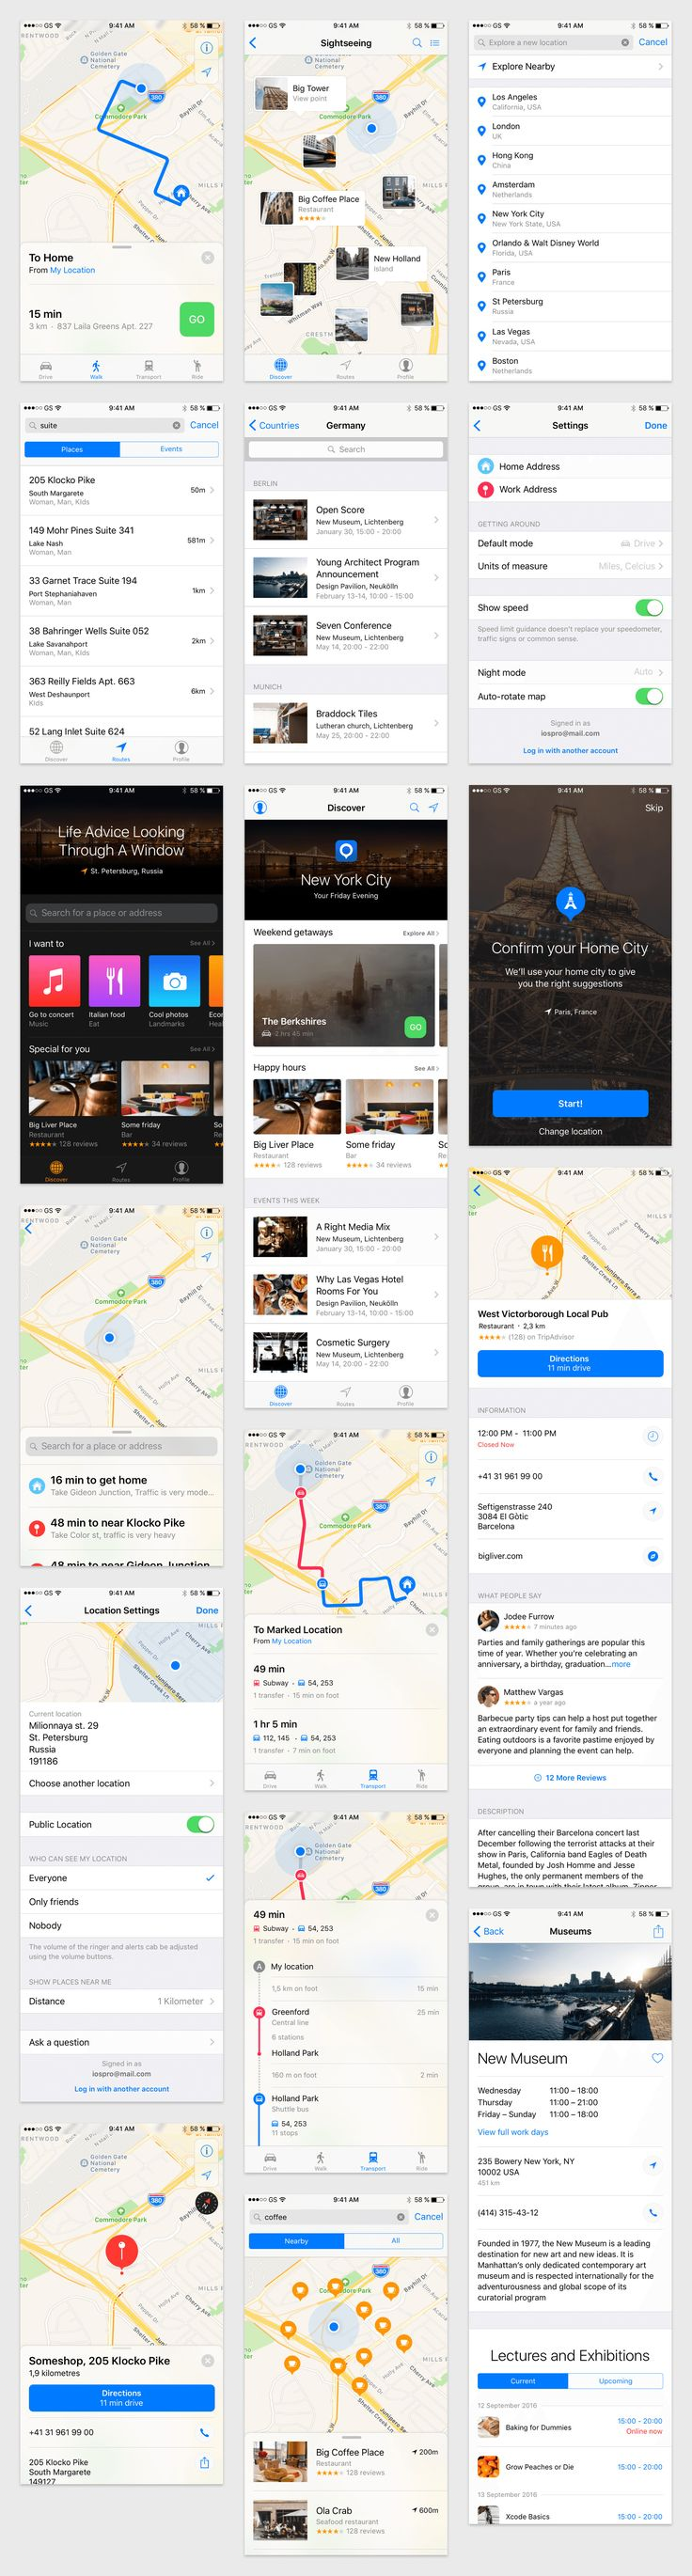 40 best Mobile UI UX interface images on Pinterest | Ios design, Ios ...